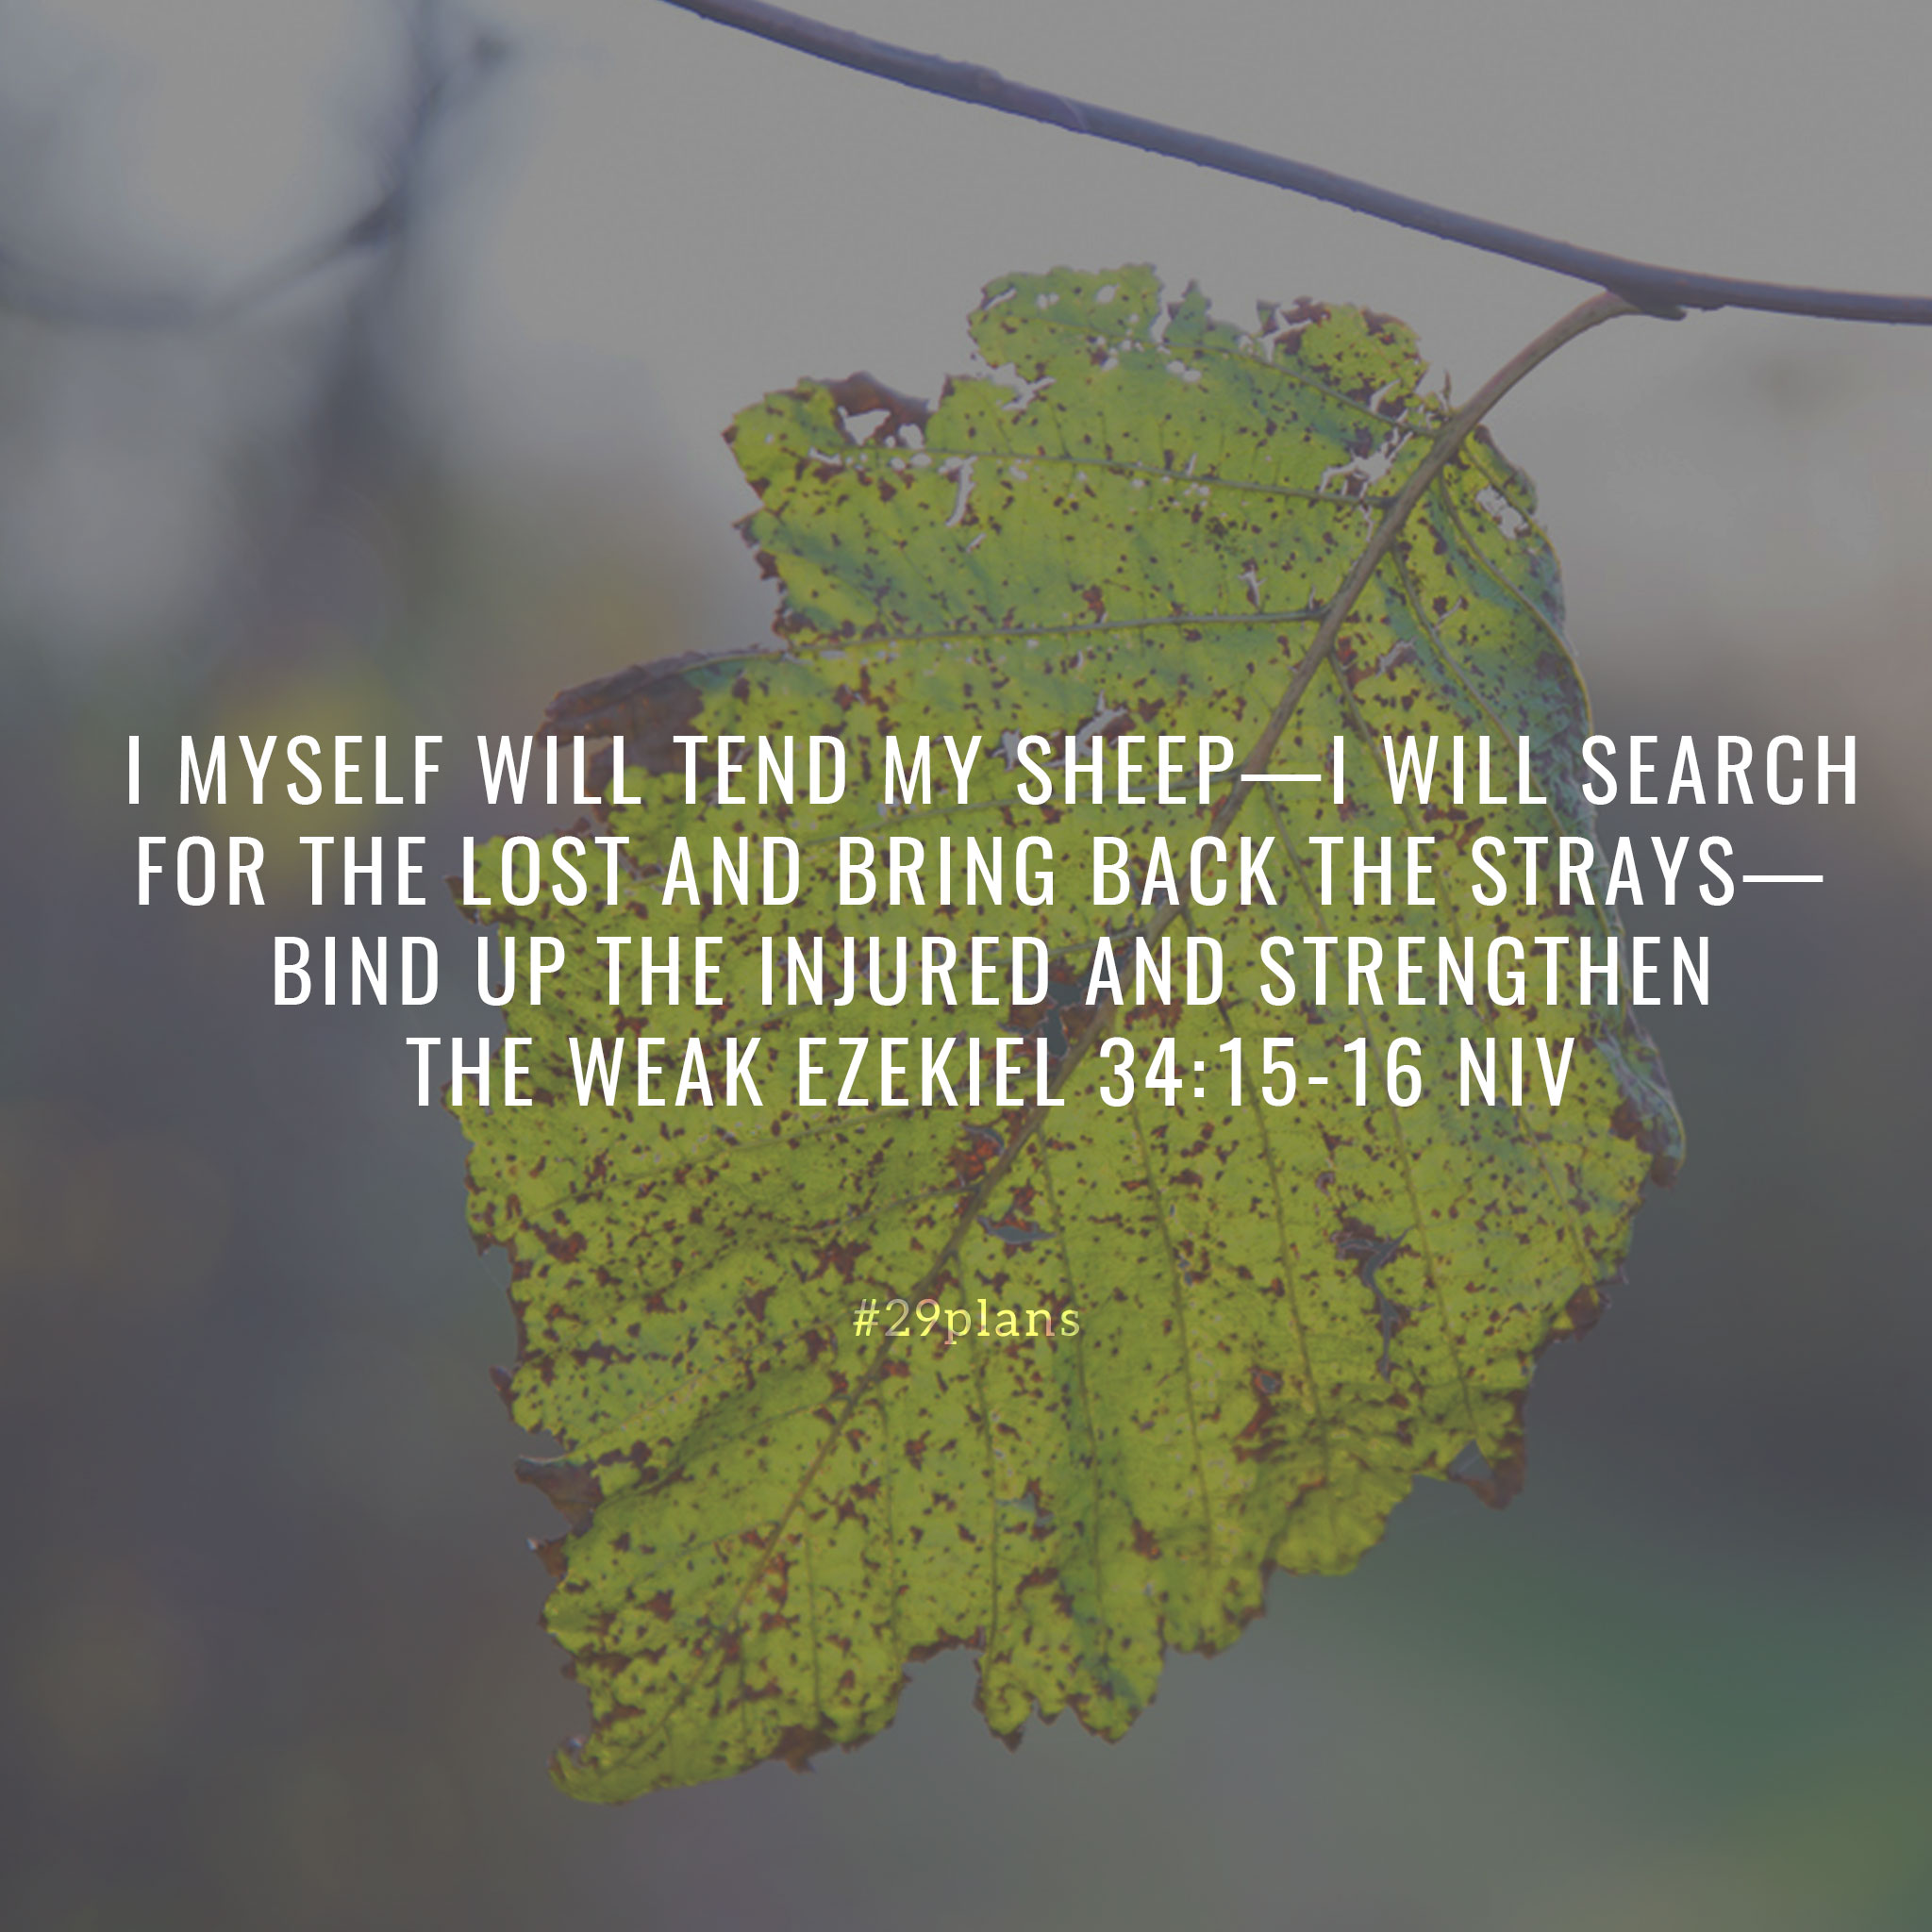 Today's Guide — 11.29.18 — The Shepherd